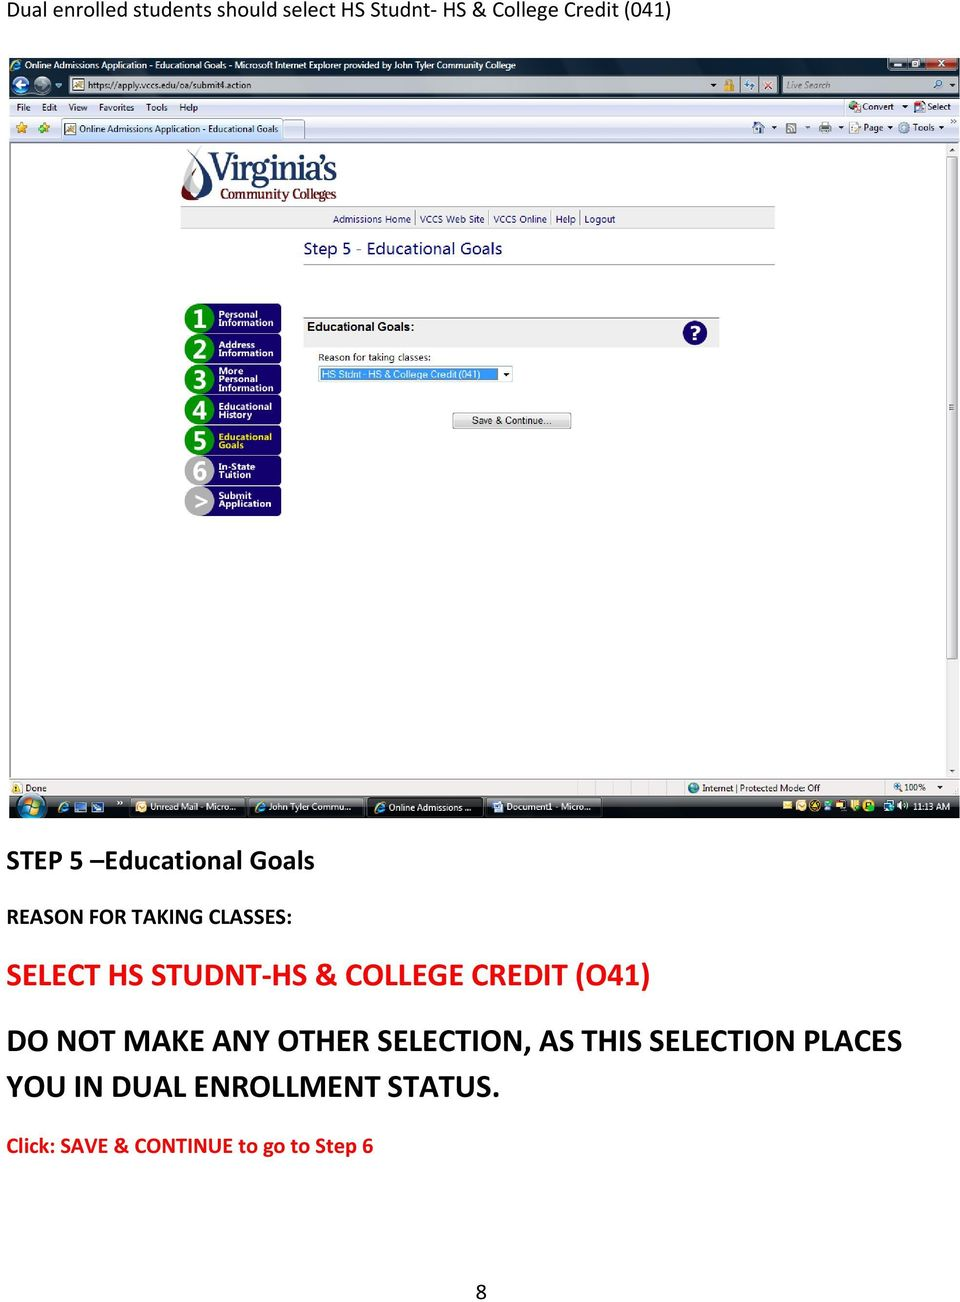 COLLEGE CREDIT (O41) DO NOT MAKE ANY OTHER SELECTION, AS THIS SELECTION